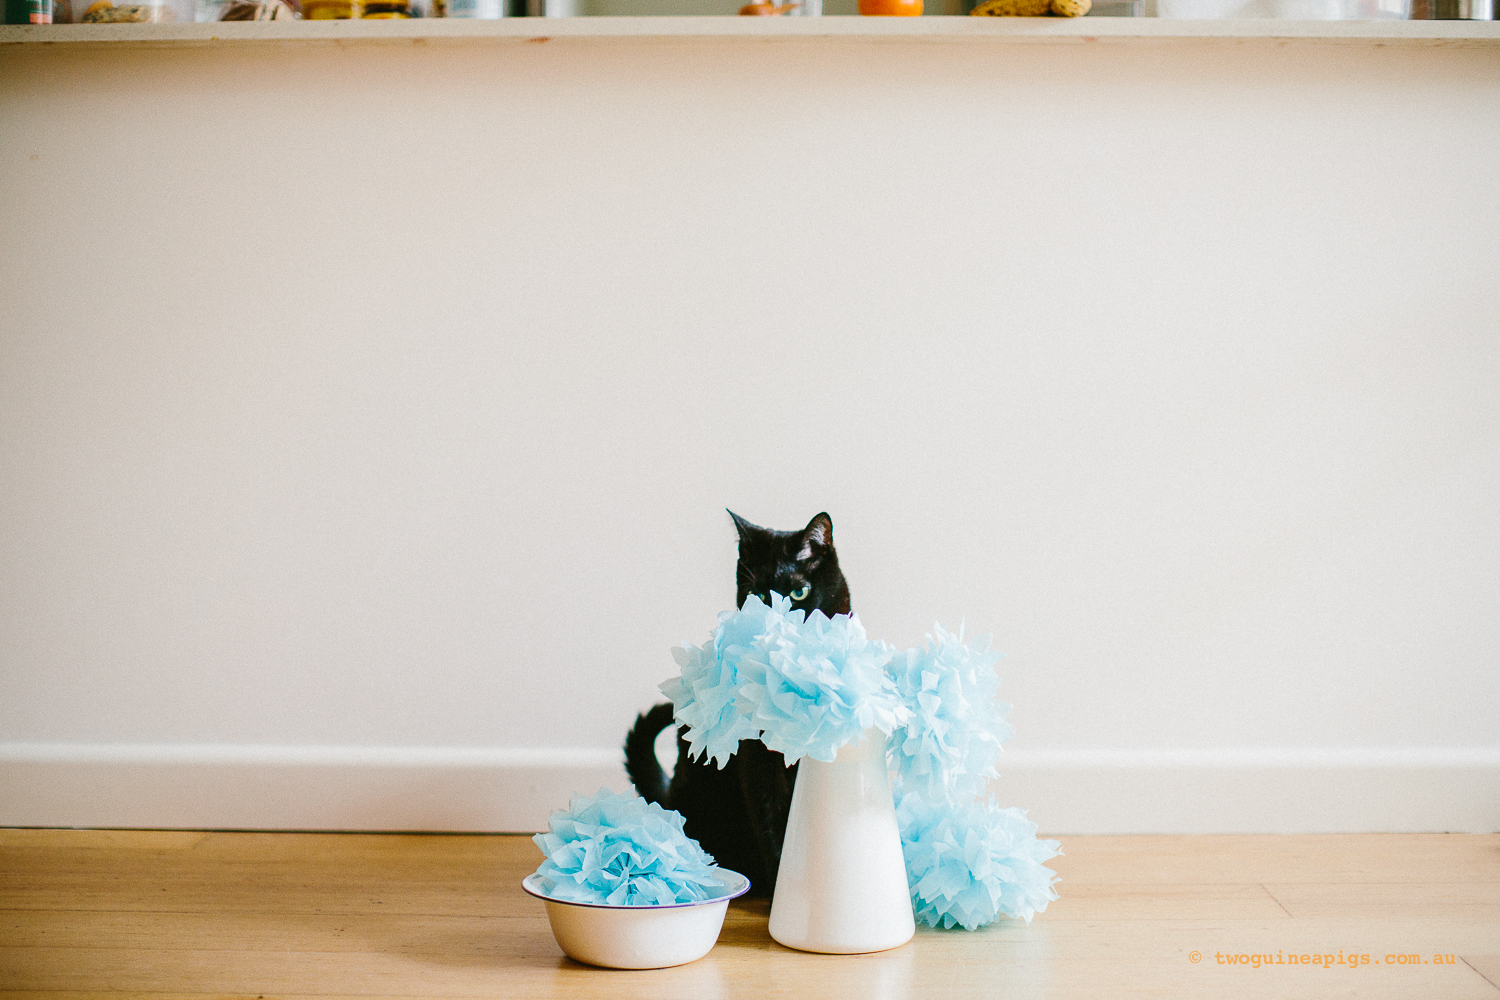 twoguineapigs_pet_photography_ruby_slipper_cat_floral_series_TEST_1500-31.jpg